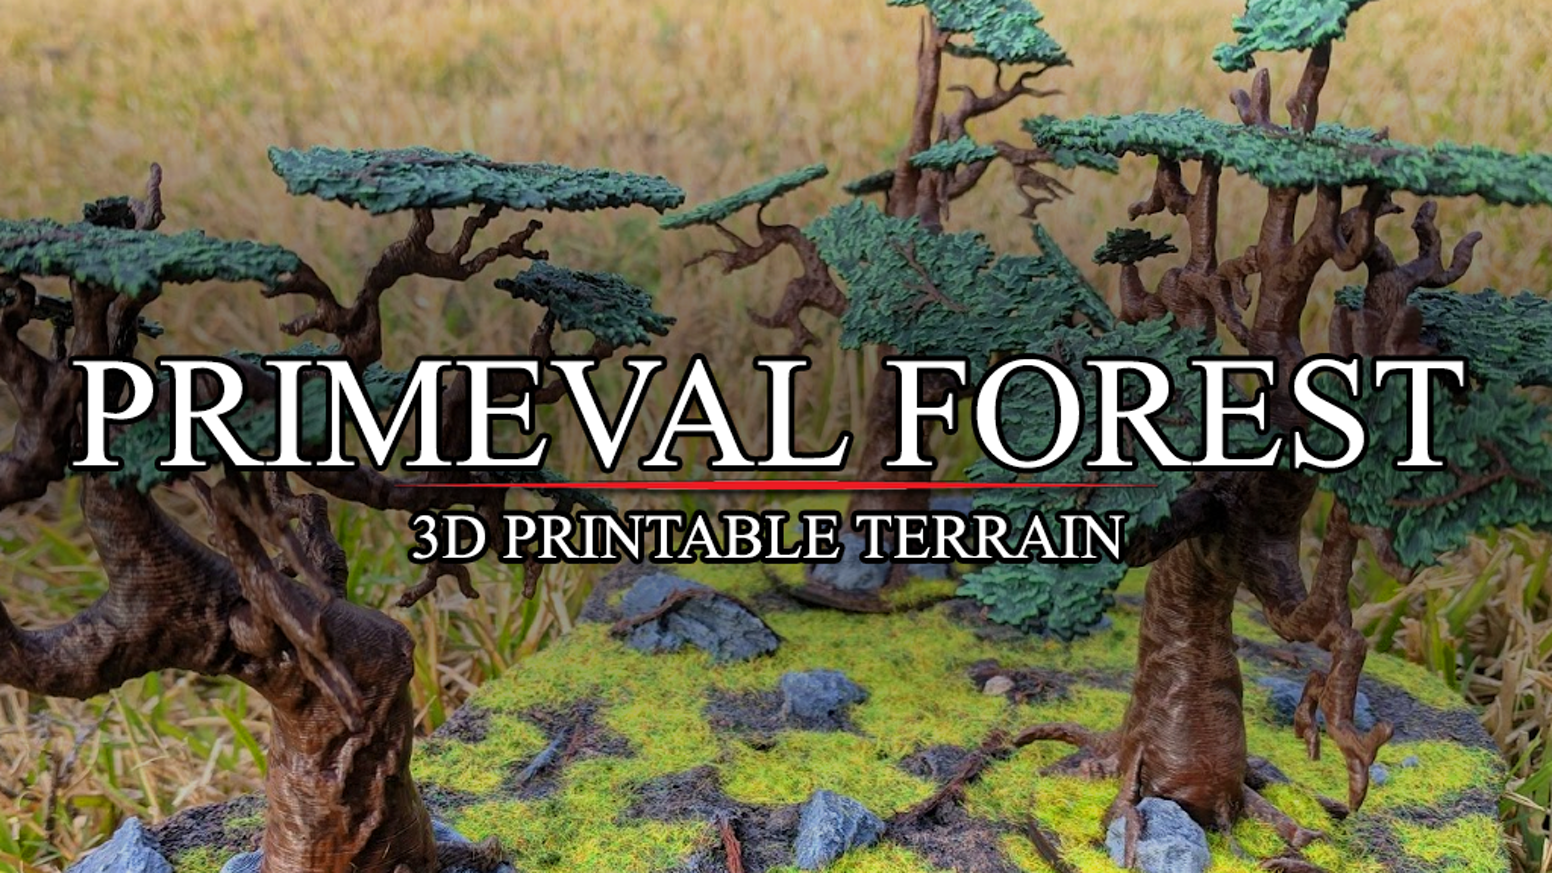 3D printed trees and forests for miniature wargaming and roleplaying games